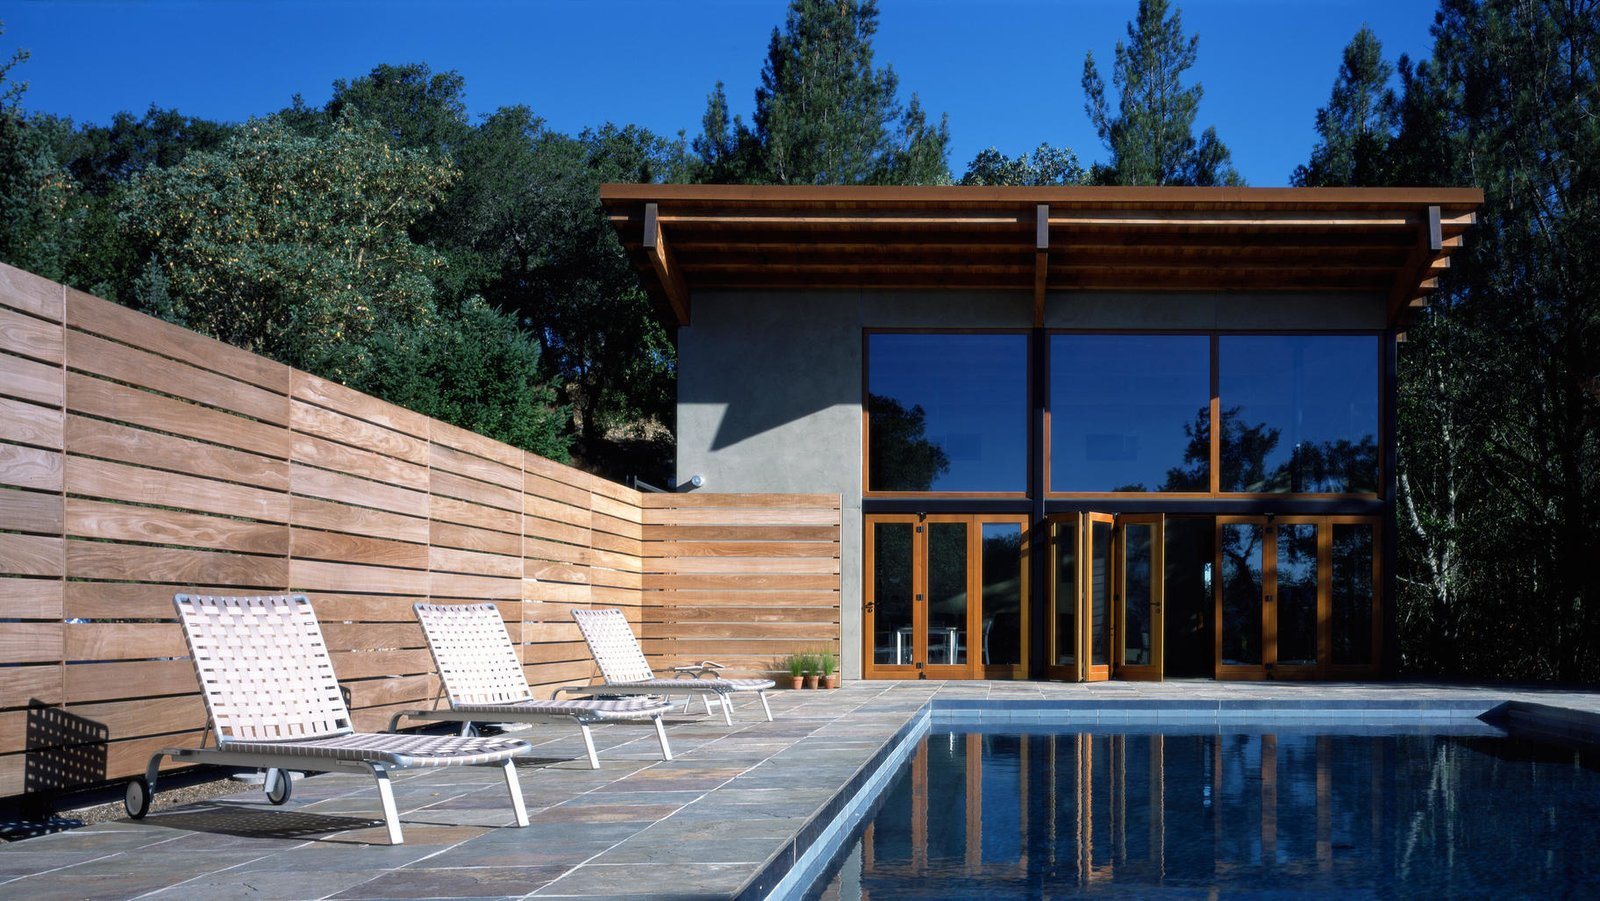 #pool #poolhouse #calistoga #exterior #smallspaces #cantileveredroof #cantilevered #roof #glass #windows